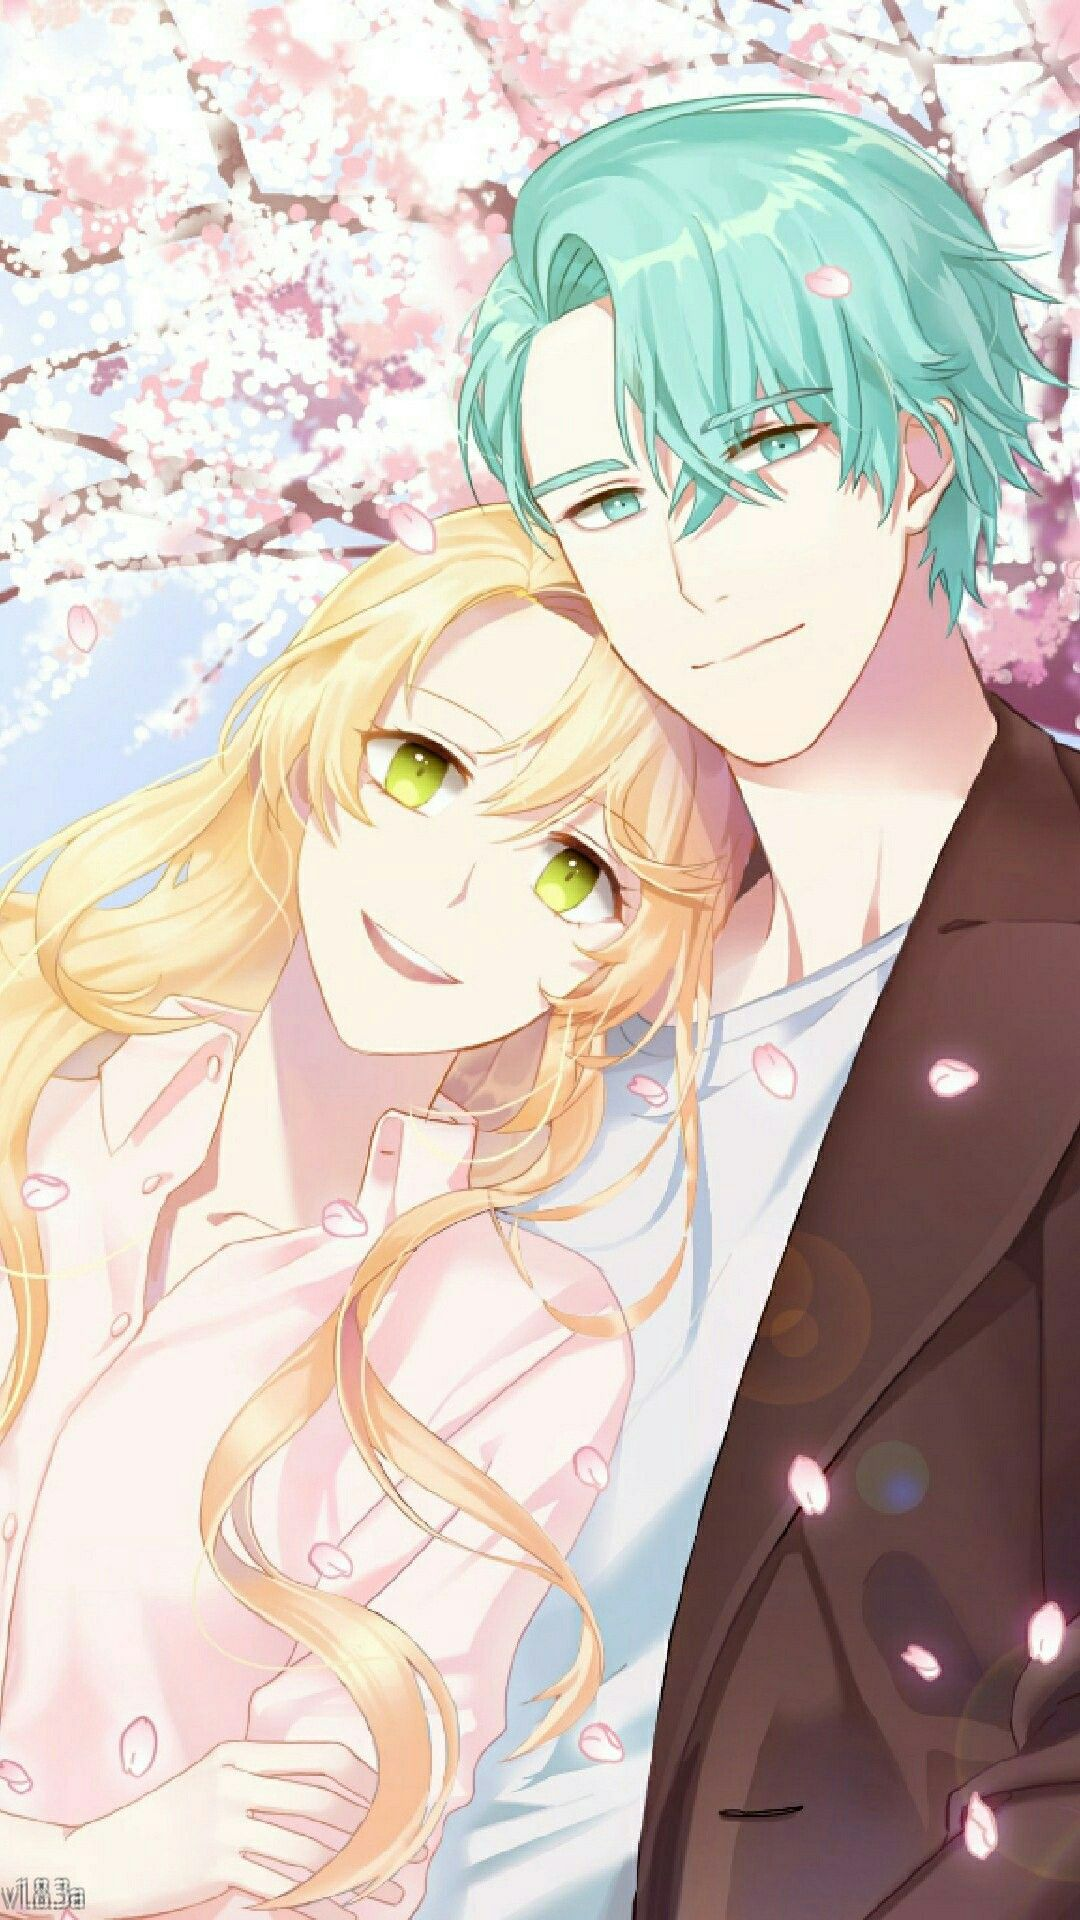 v and rika gallery Mystic messenger v, Mystic messenger